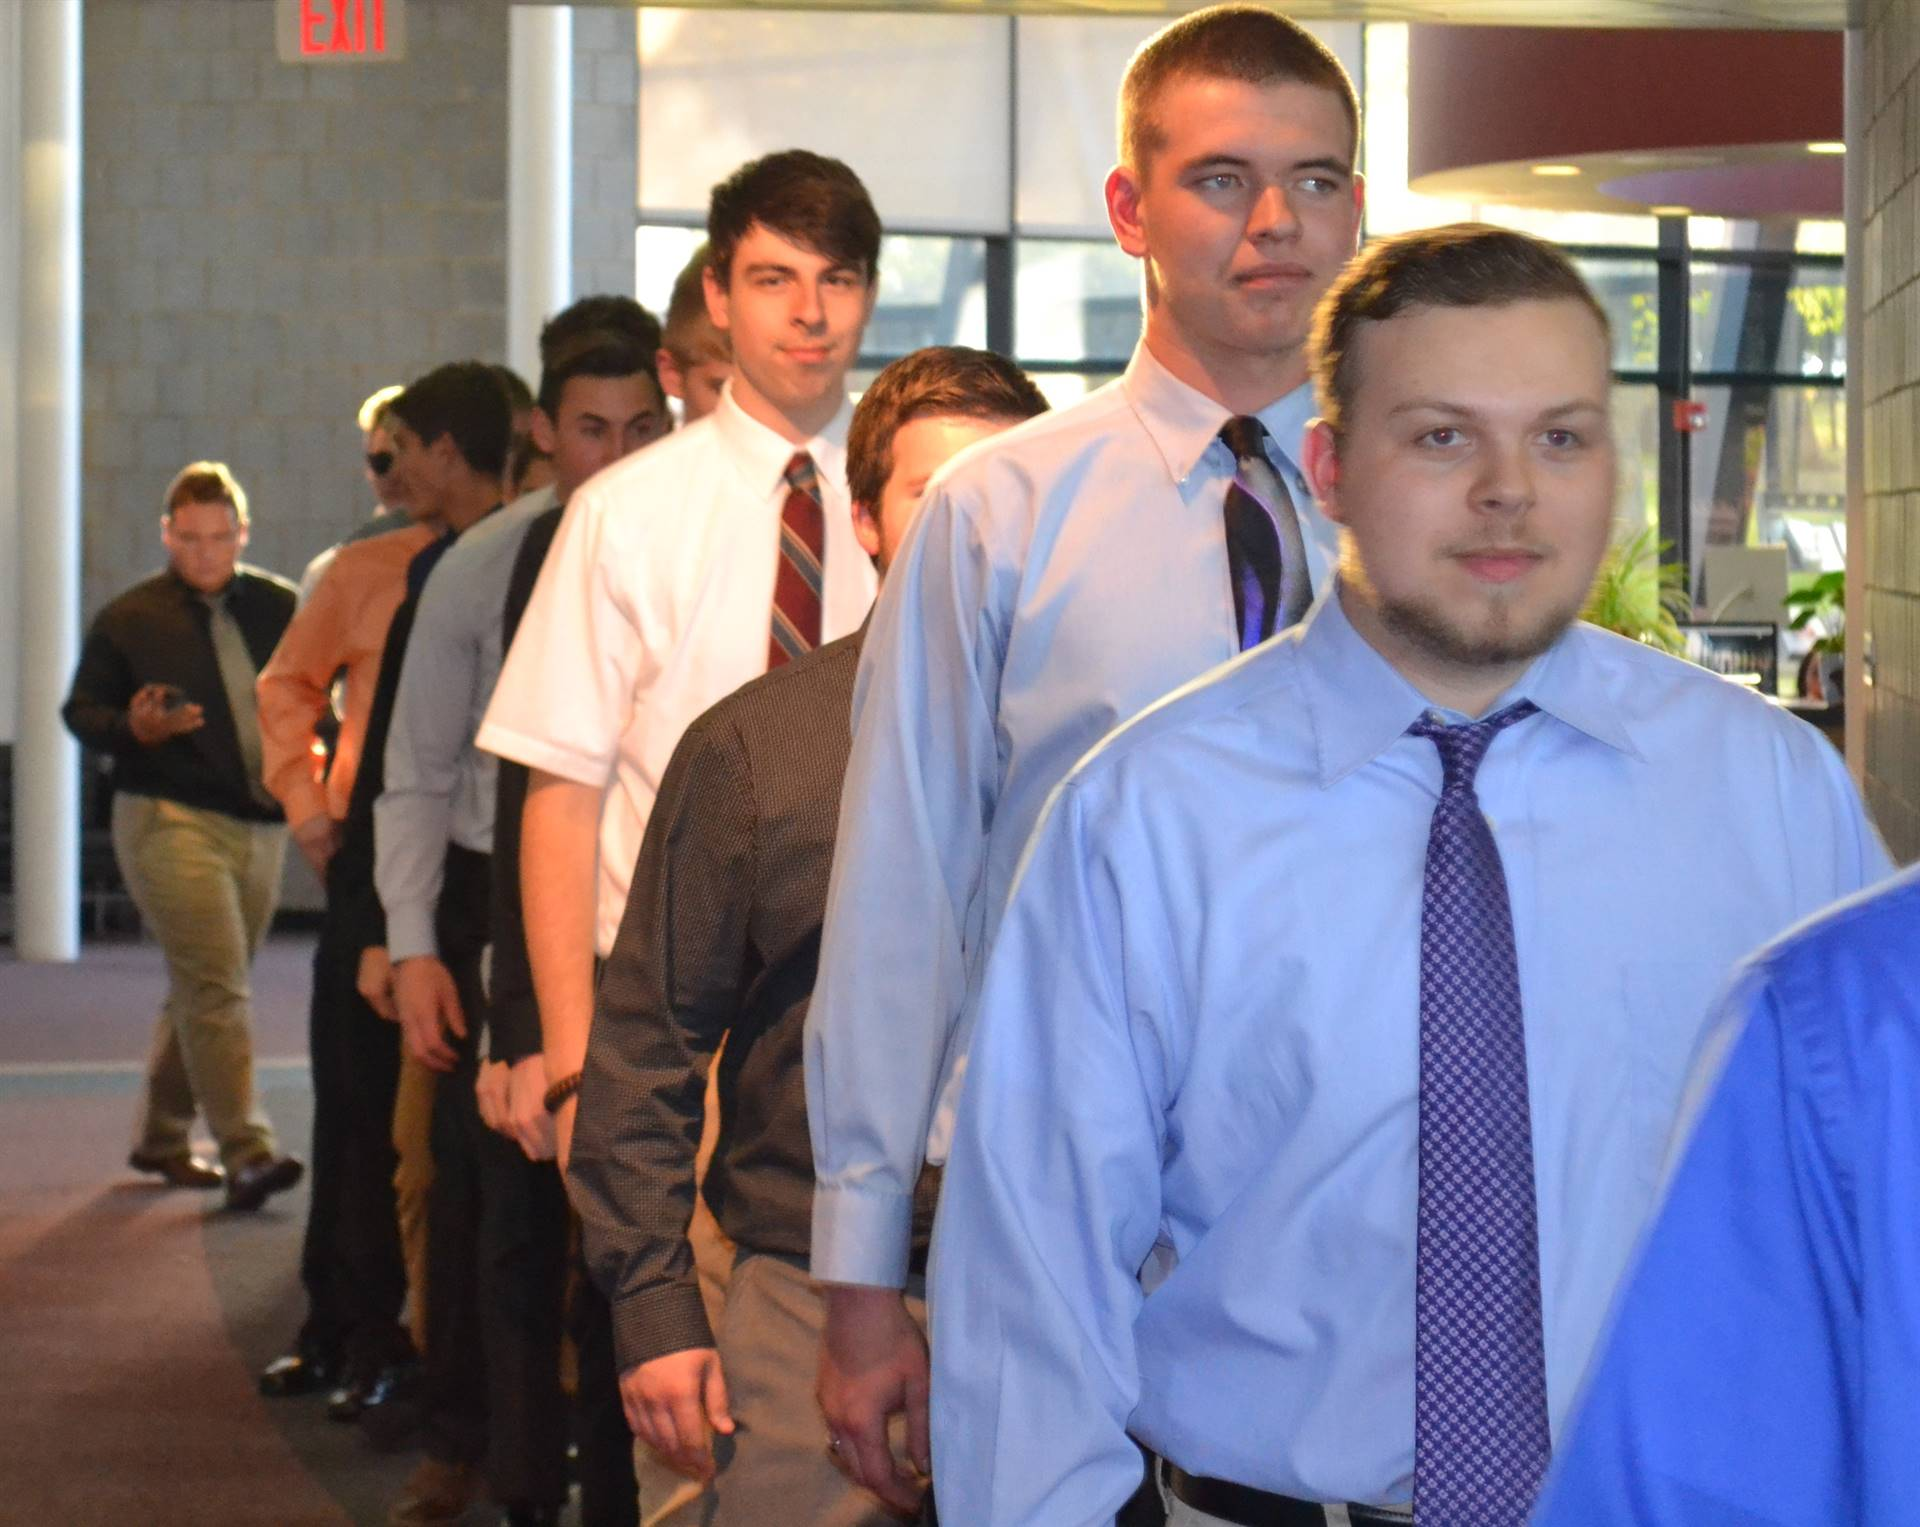 instructor with students entering Commons